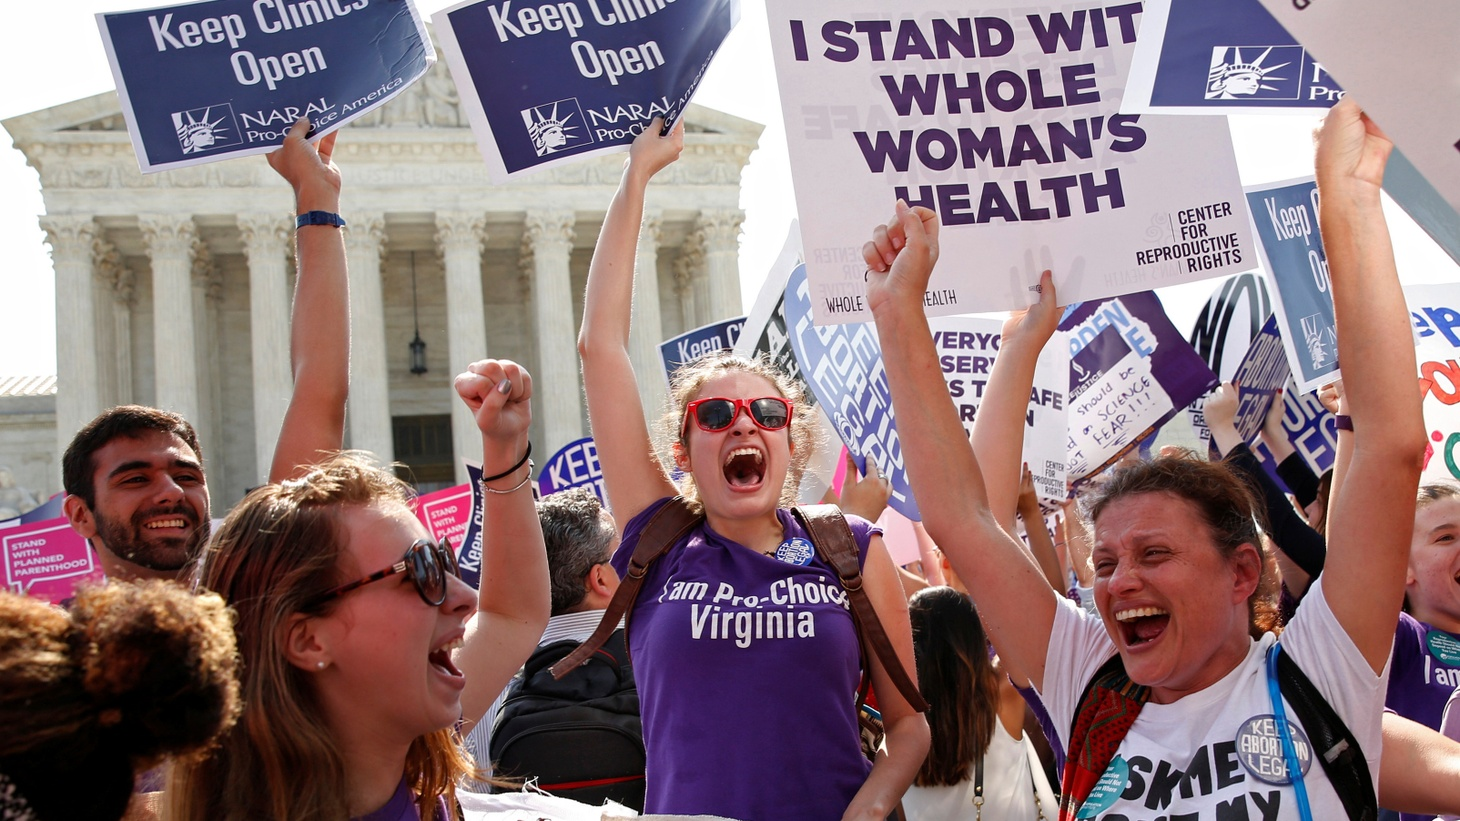 The Supreme Court has handed down a major decision that could limit states' rights to regulate abortion for years to come.